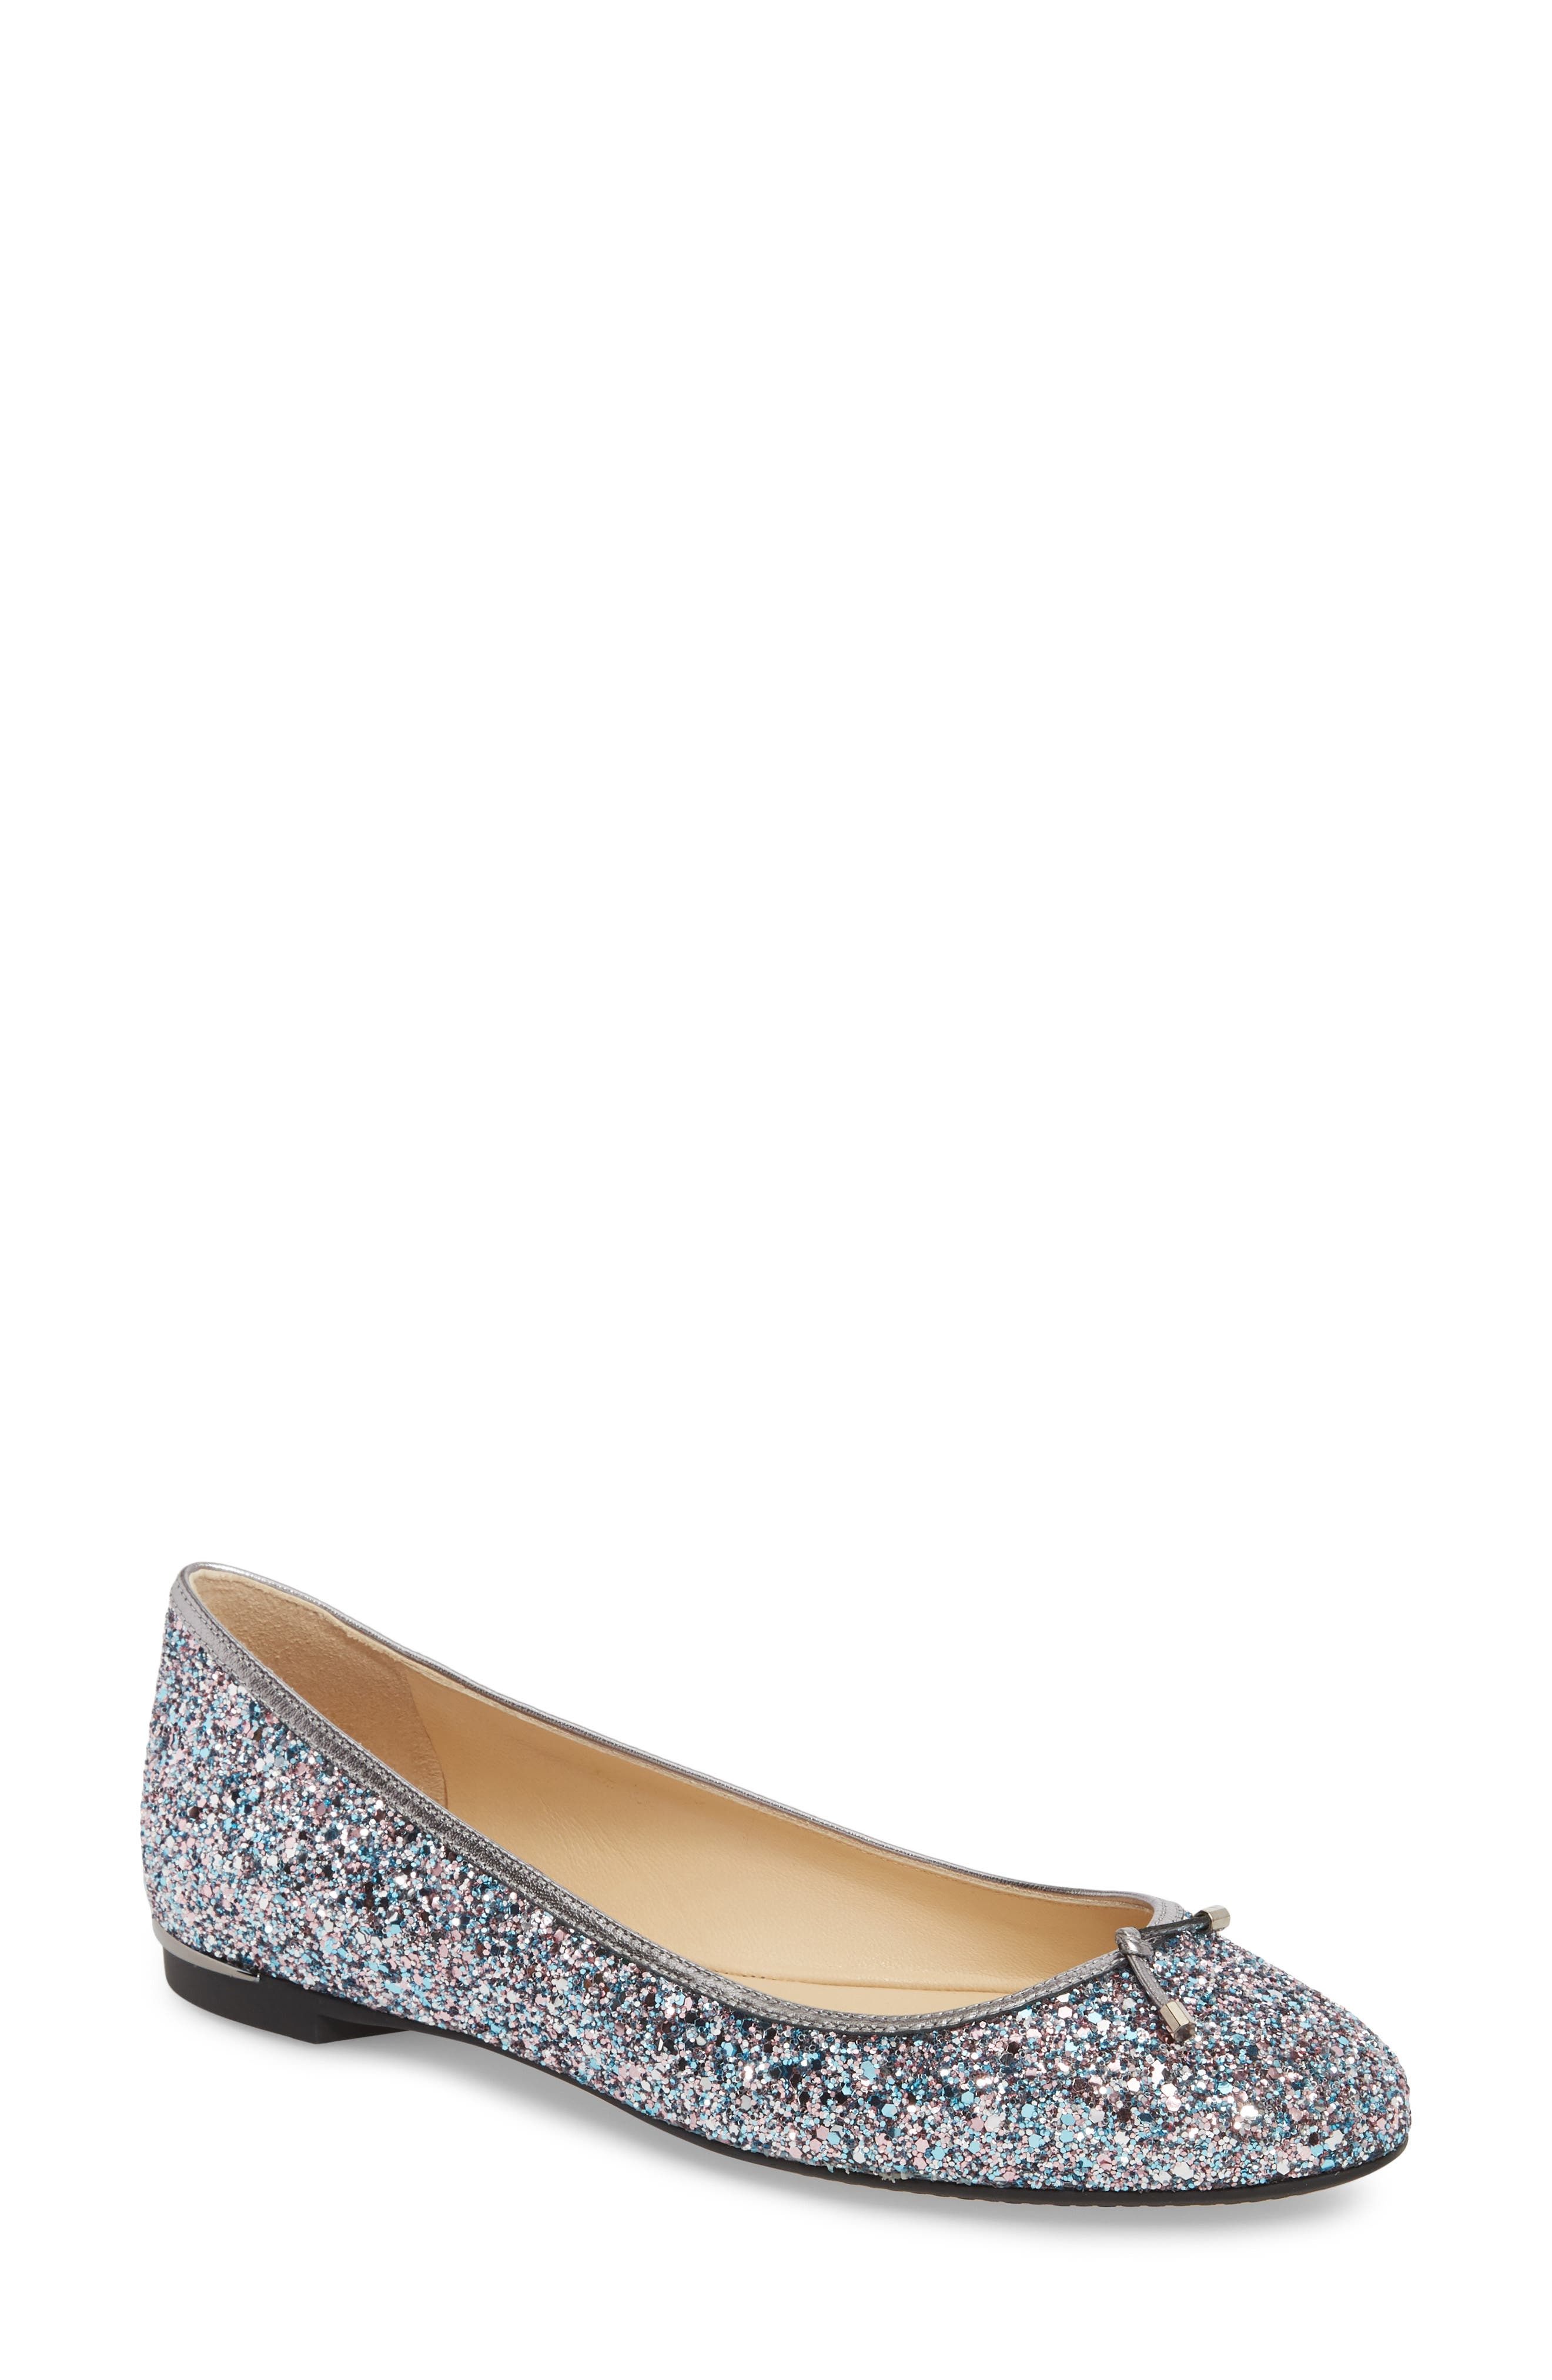 Jennie Embellished Ballet Flat,                         Main,                         color, Bubblegum